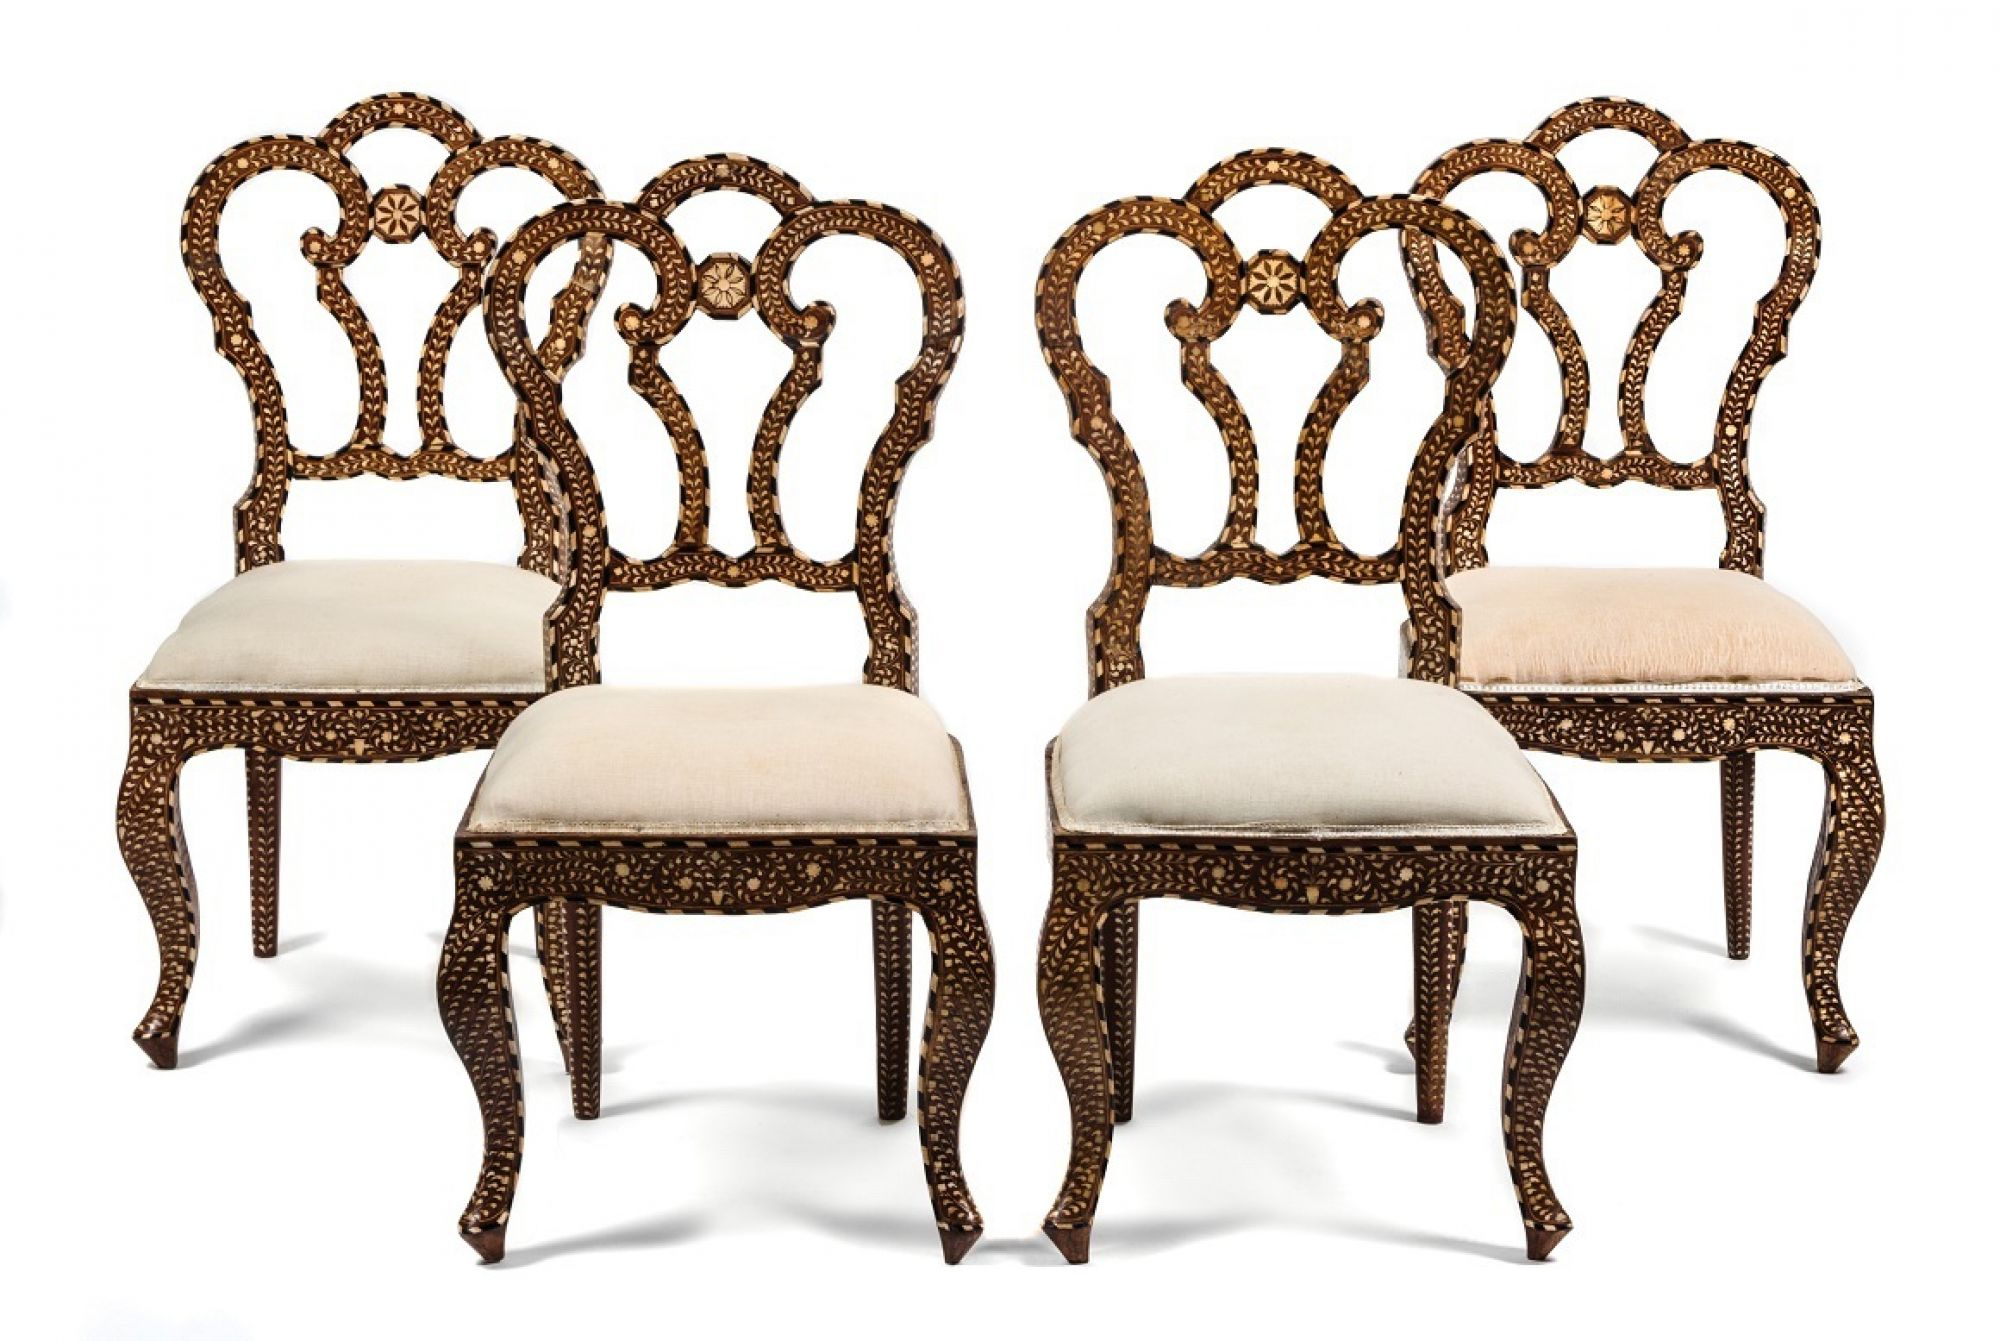 384 115 Four Eastern Bone Inlaid Chairs RGB sm